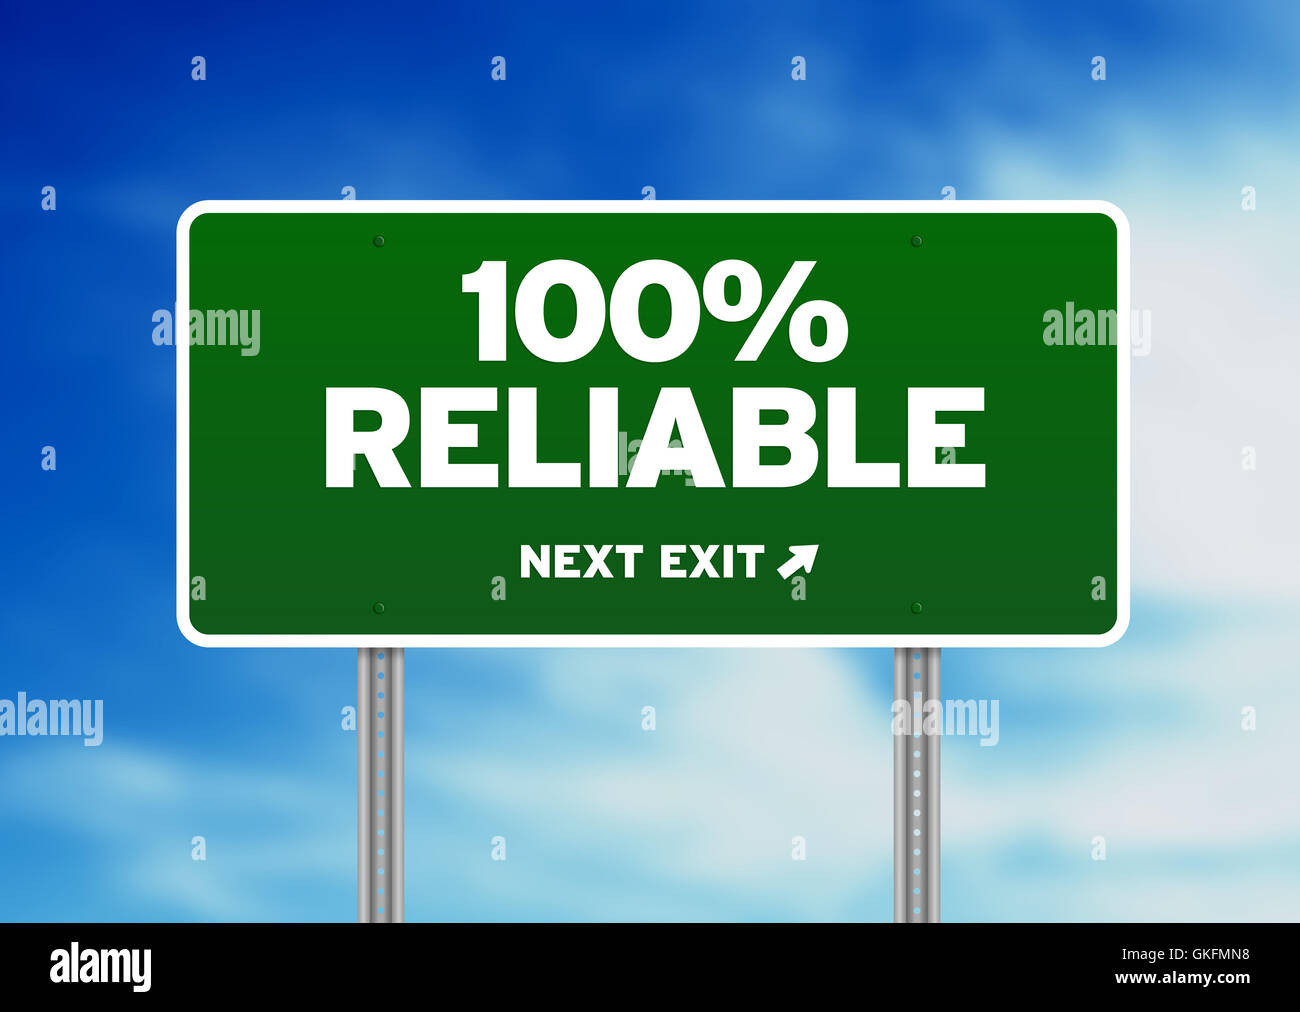 100% Reliable Road Sign - Stock Image